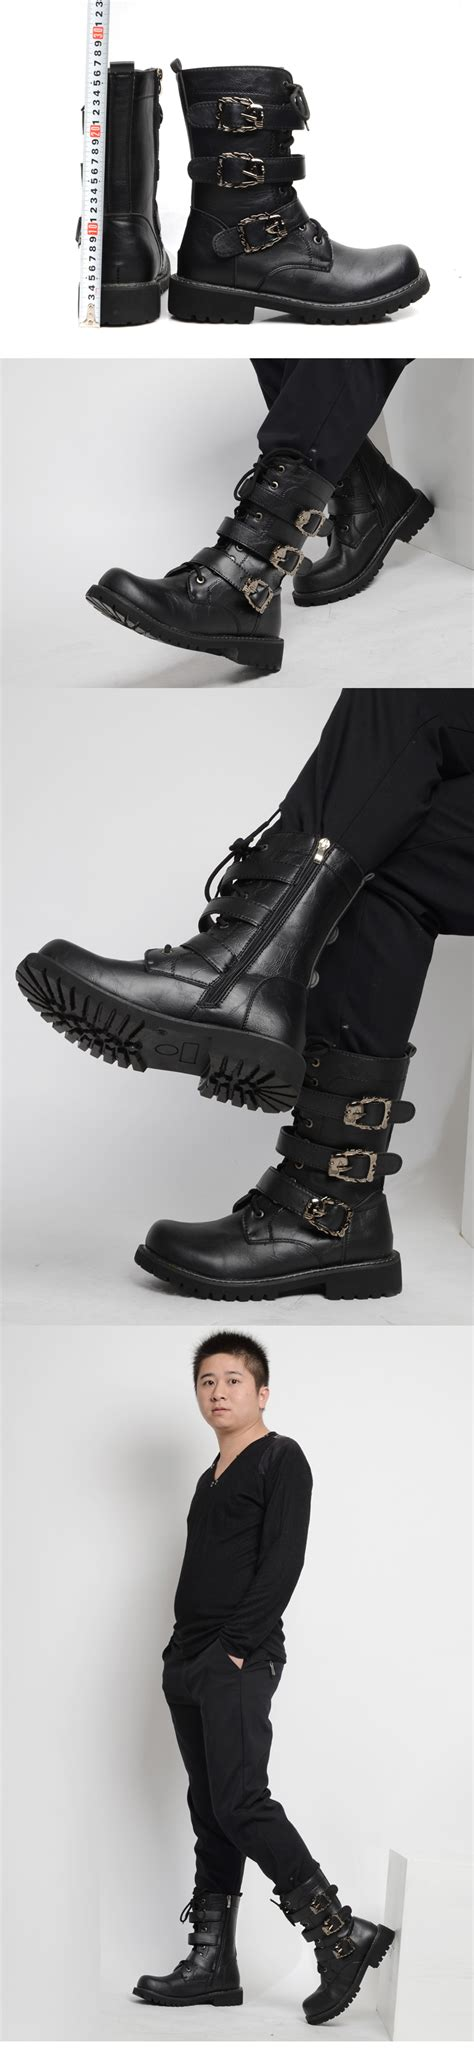 men s punk rock black white pattern gothic goth emo punk rock mens black goth punk rock band buckle boots a605